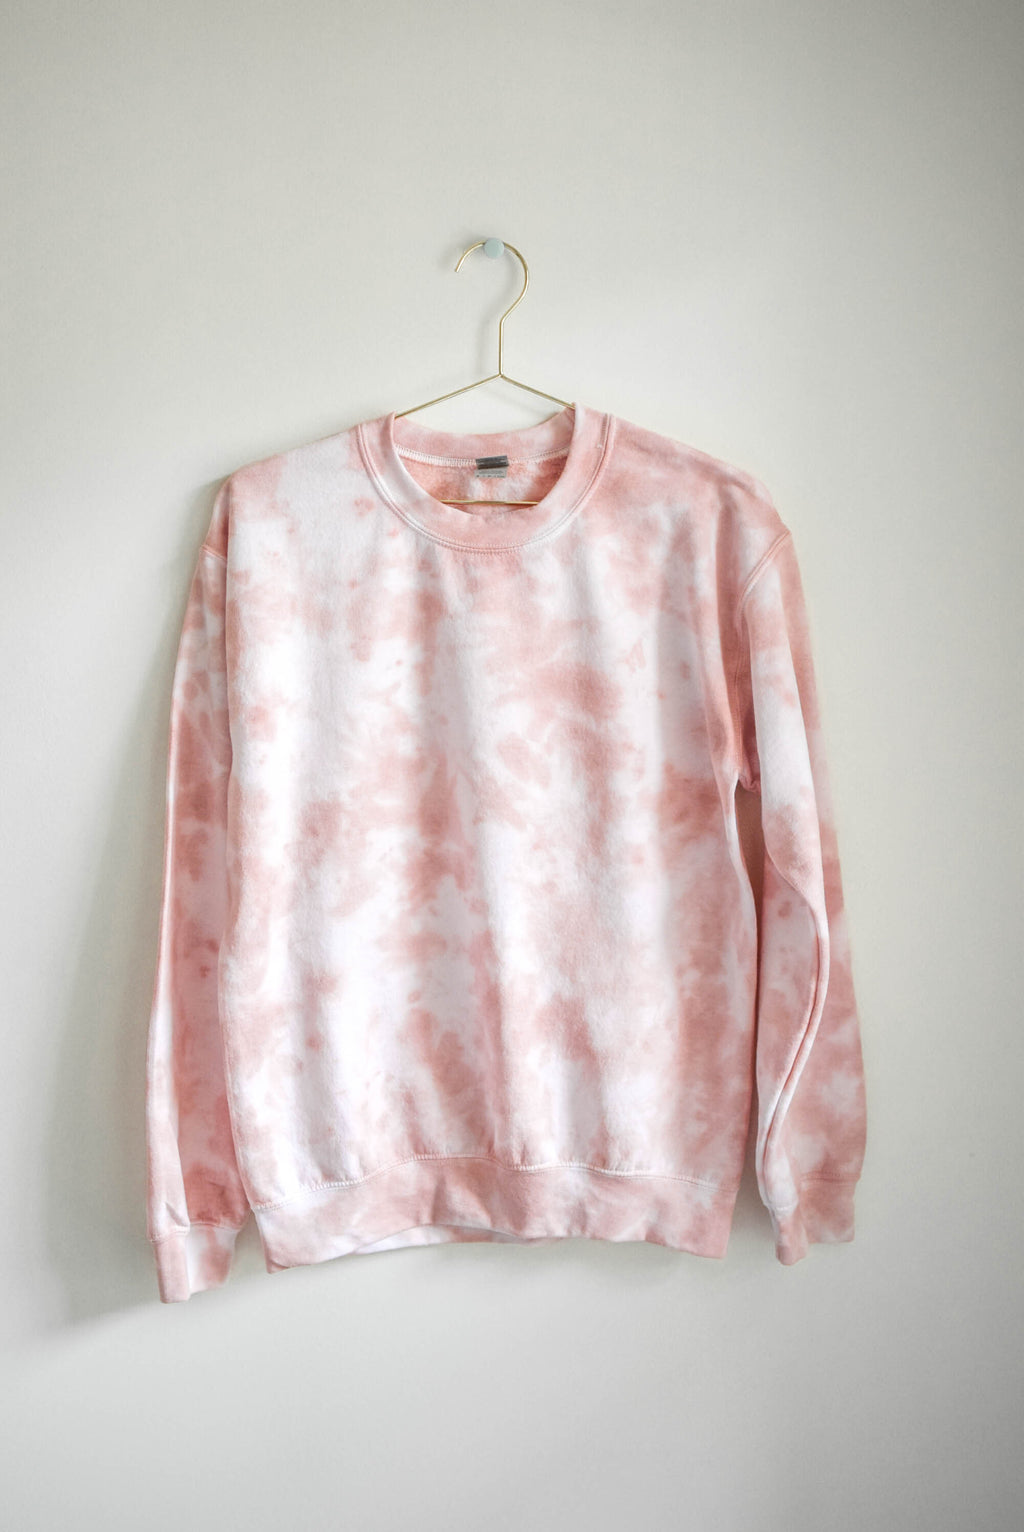 Pastel Tie Dye Sweatshirt - Tan Blush - SMALL